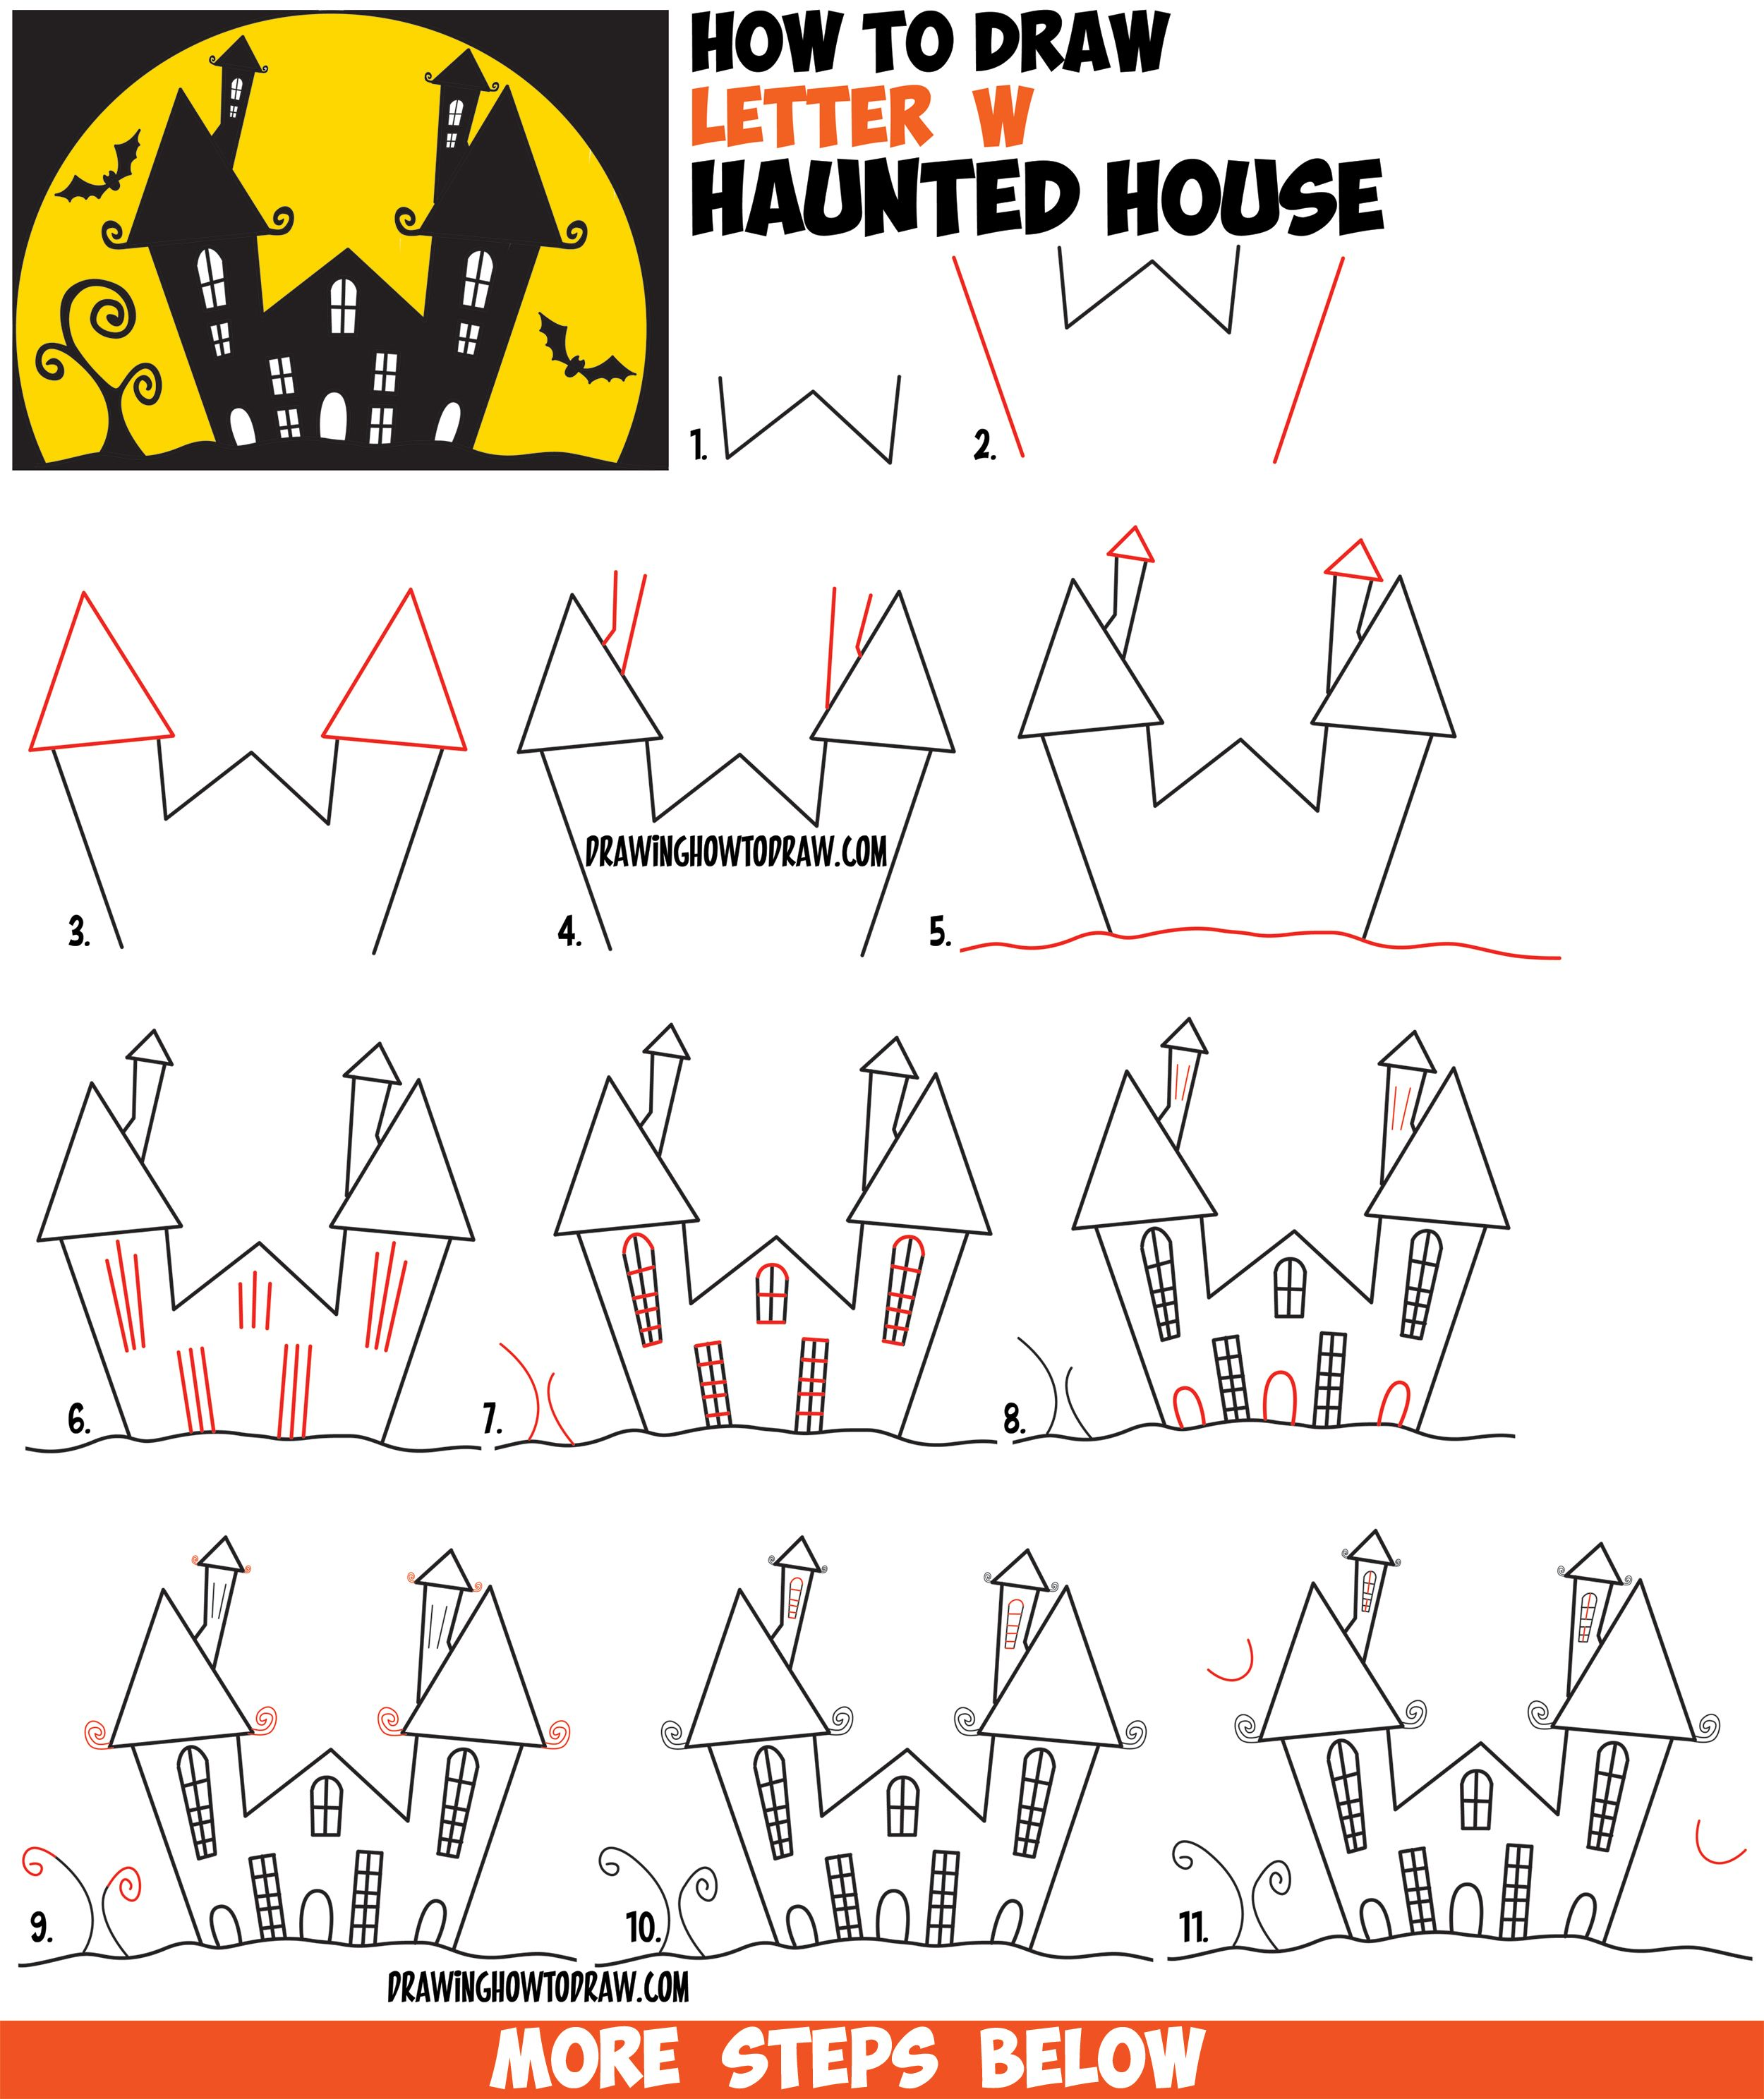 Uncategorized Easy Halloween Drawings Step Step how to draw a cartoon haunted house step by in silhouette with bats from the letter w easy for kids halloween to